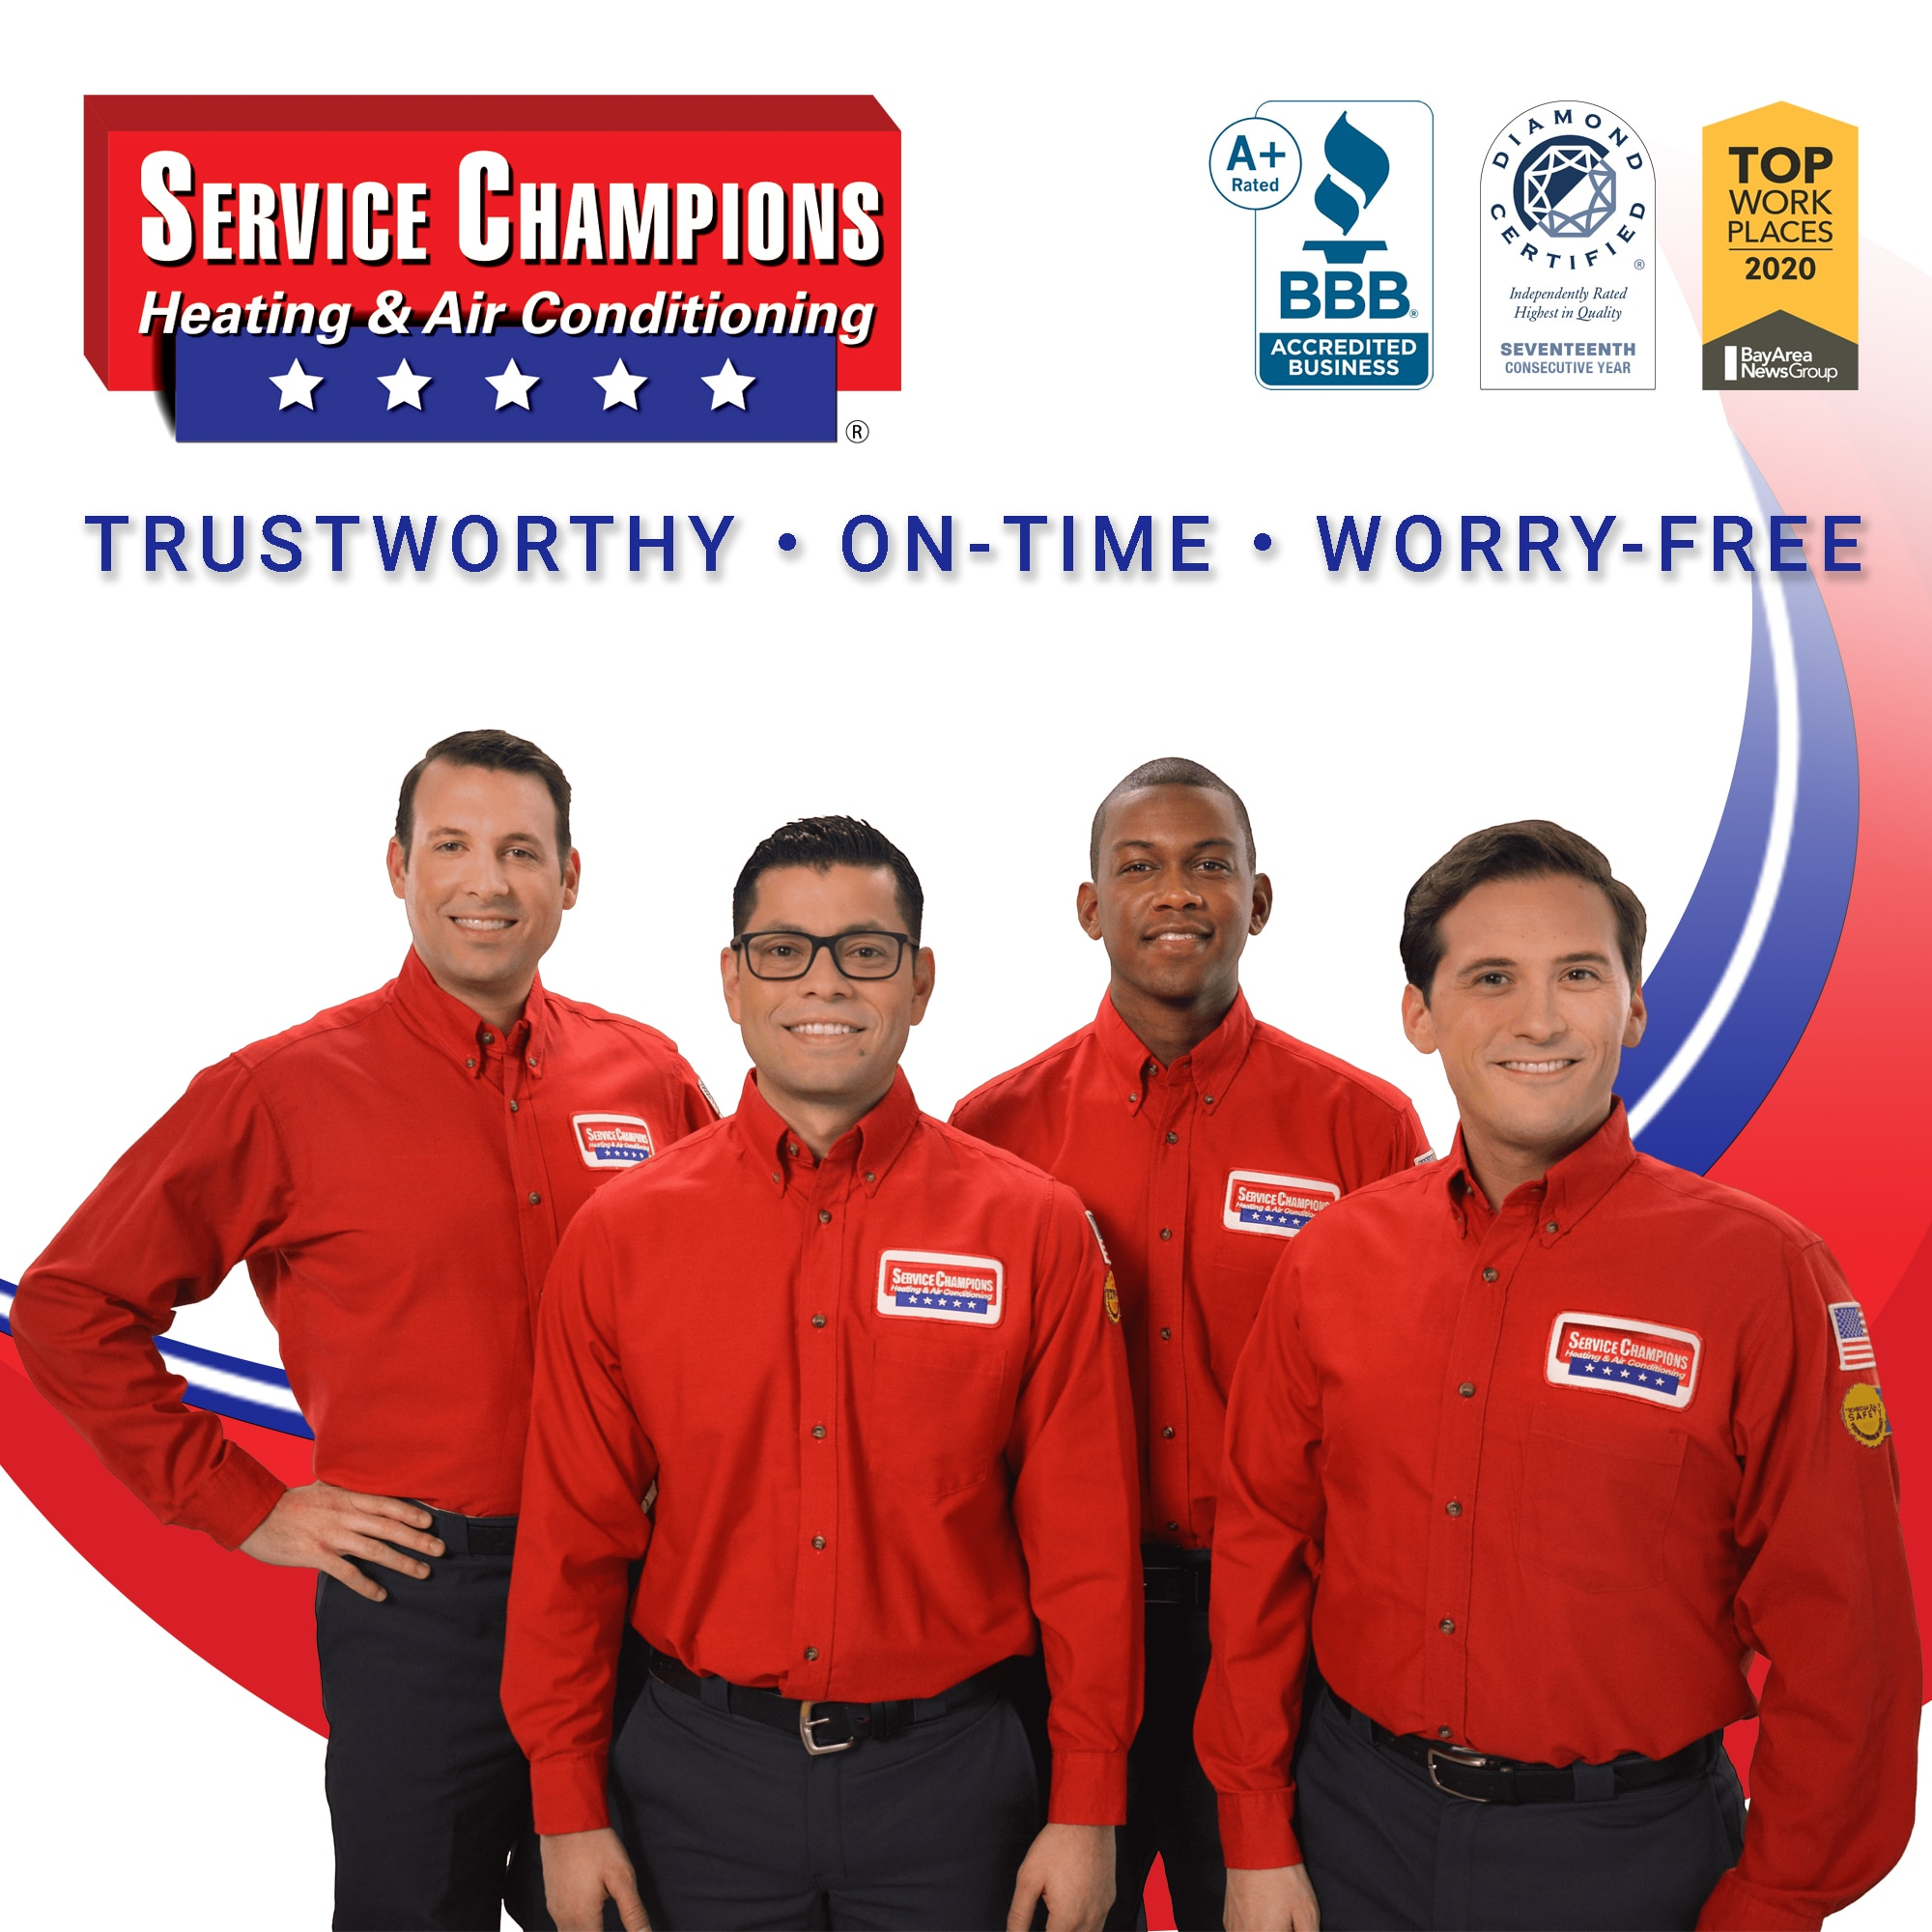 Service Champions Heating & Air Conditioning logo